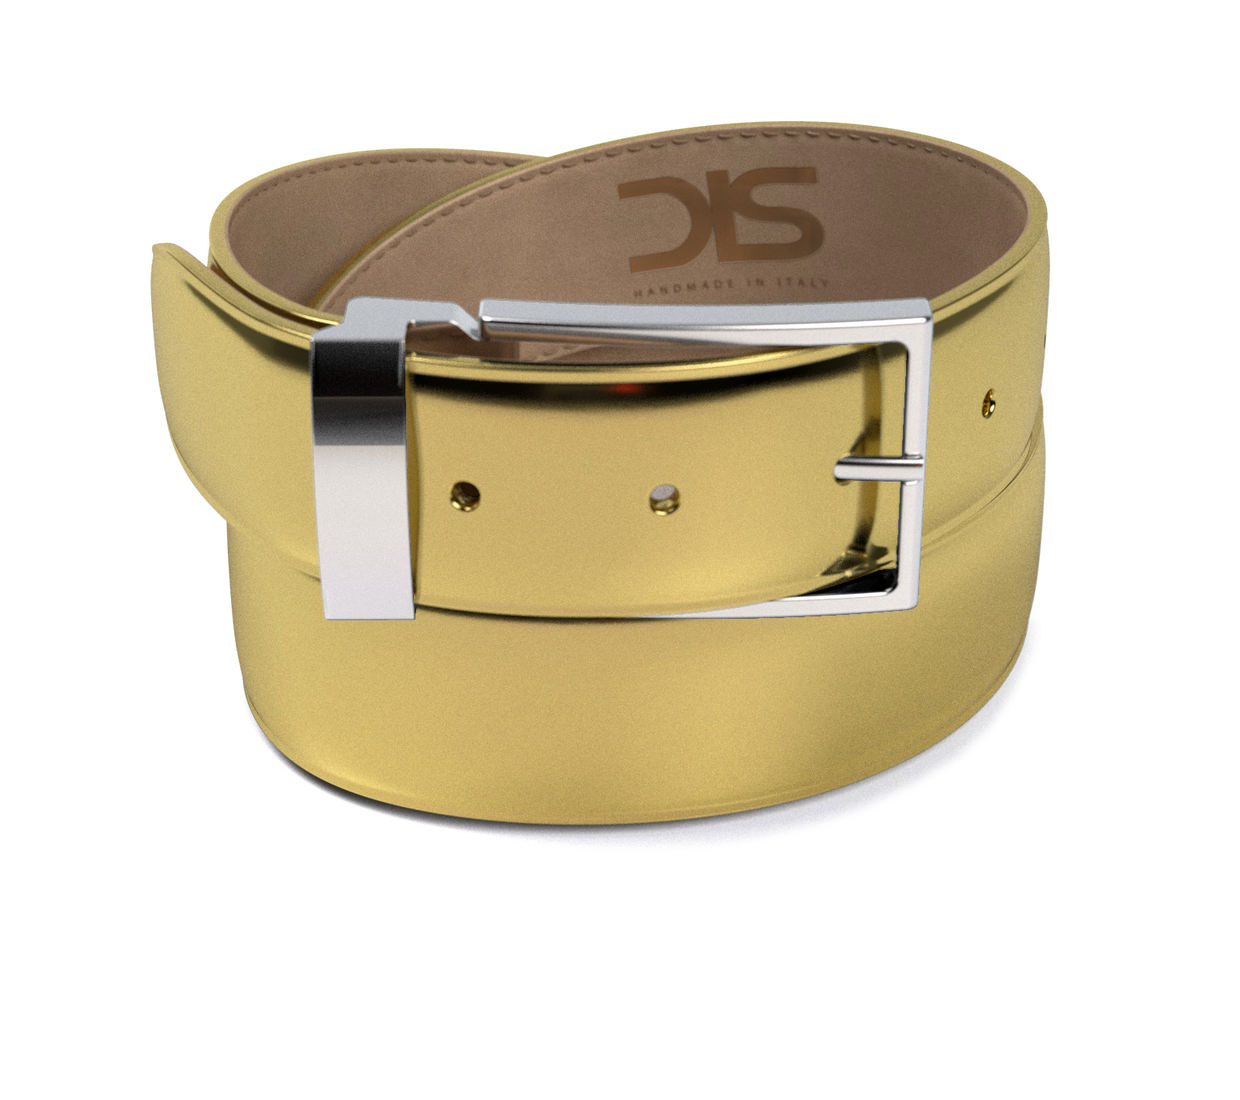 Shiny laminated gold leather belt with silver buckle